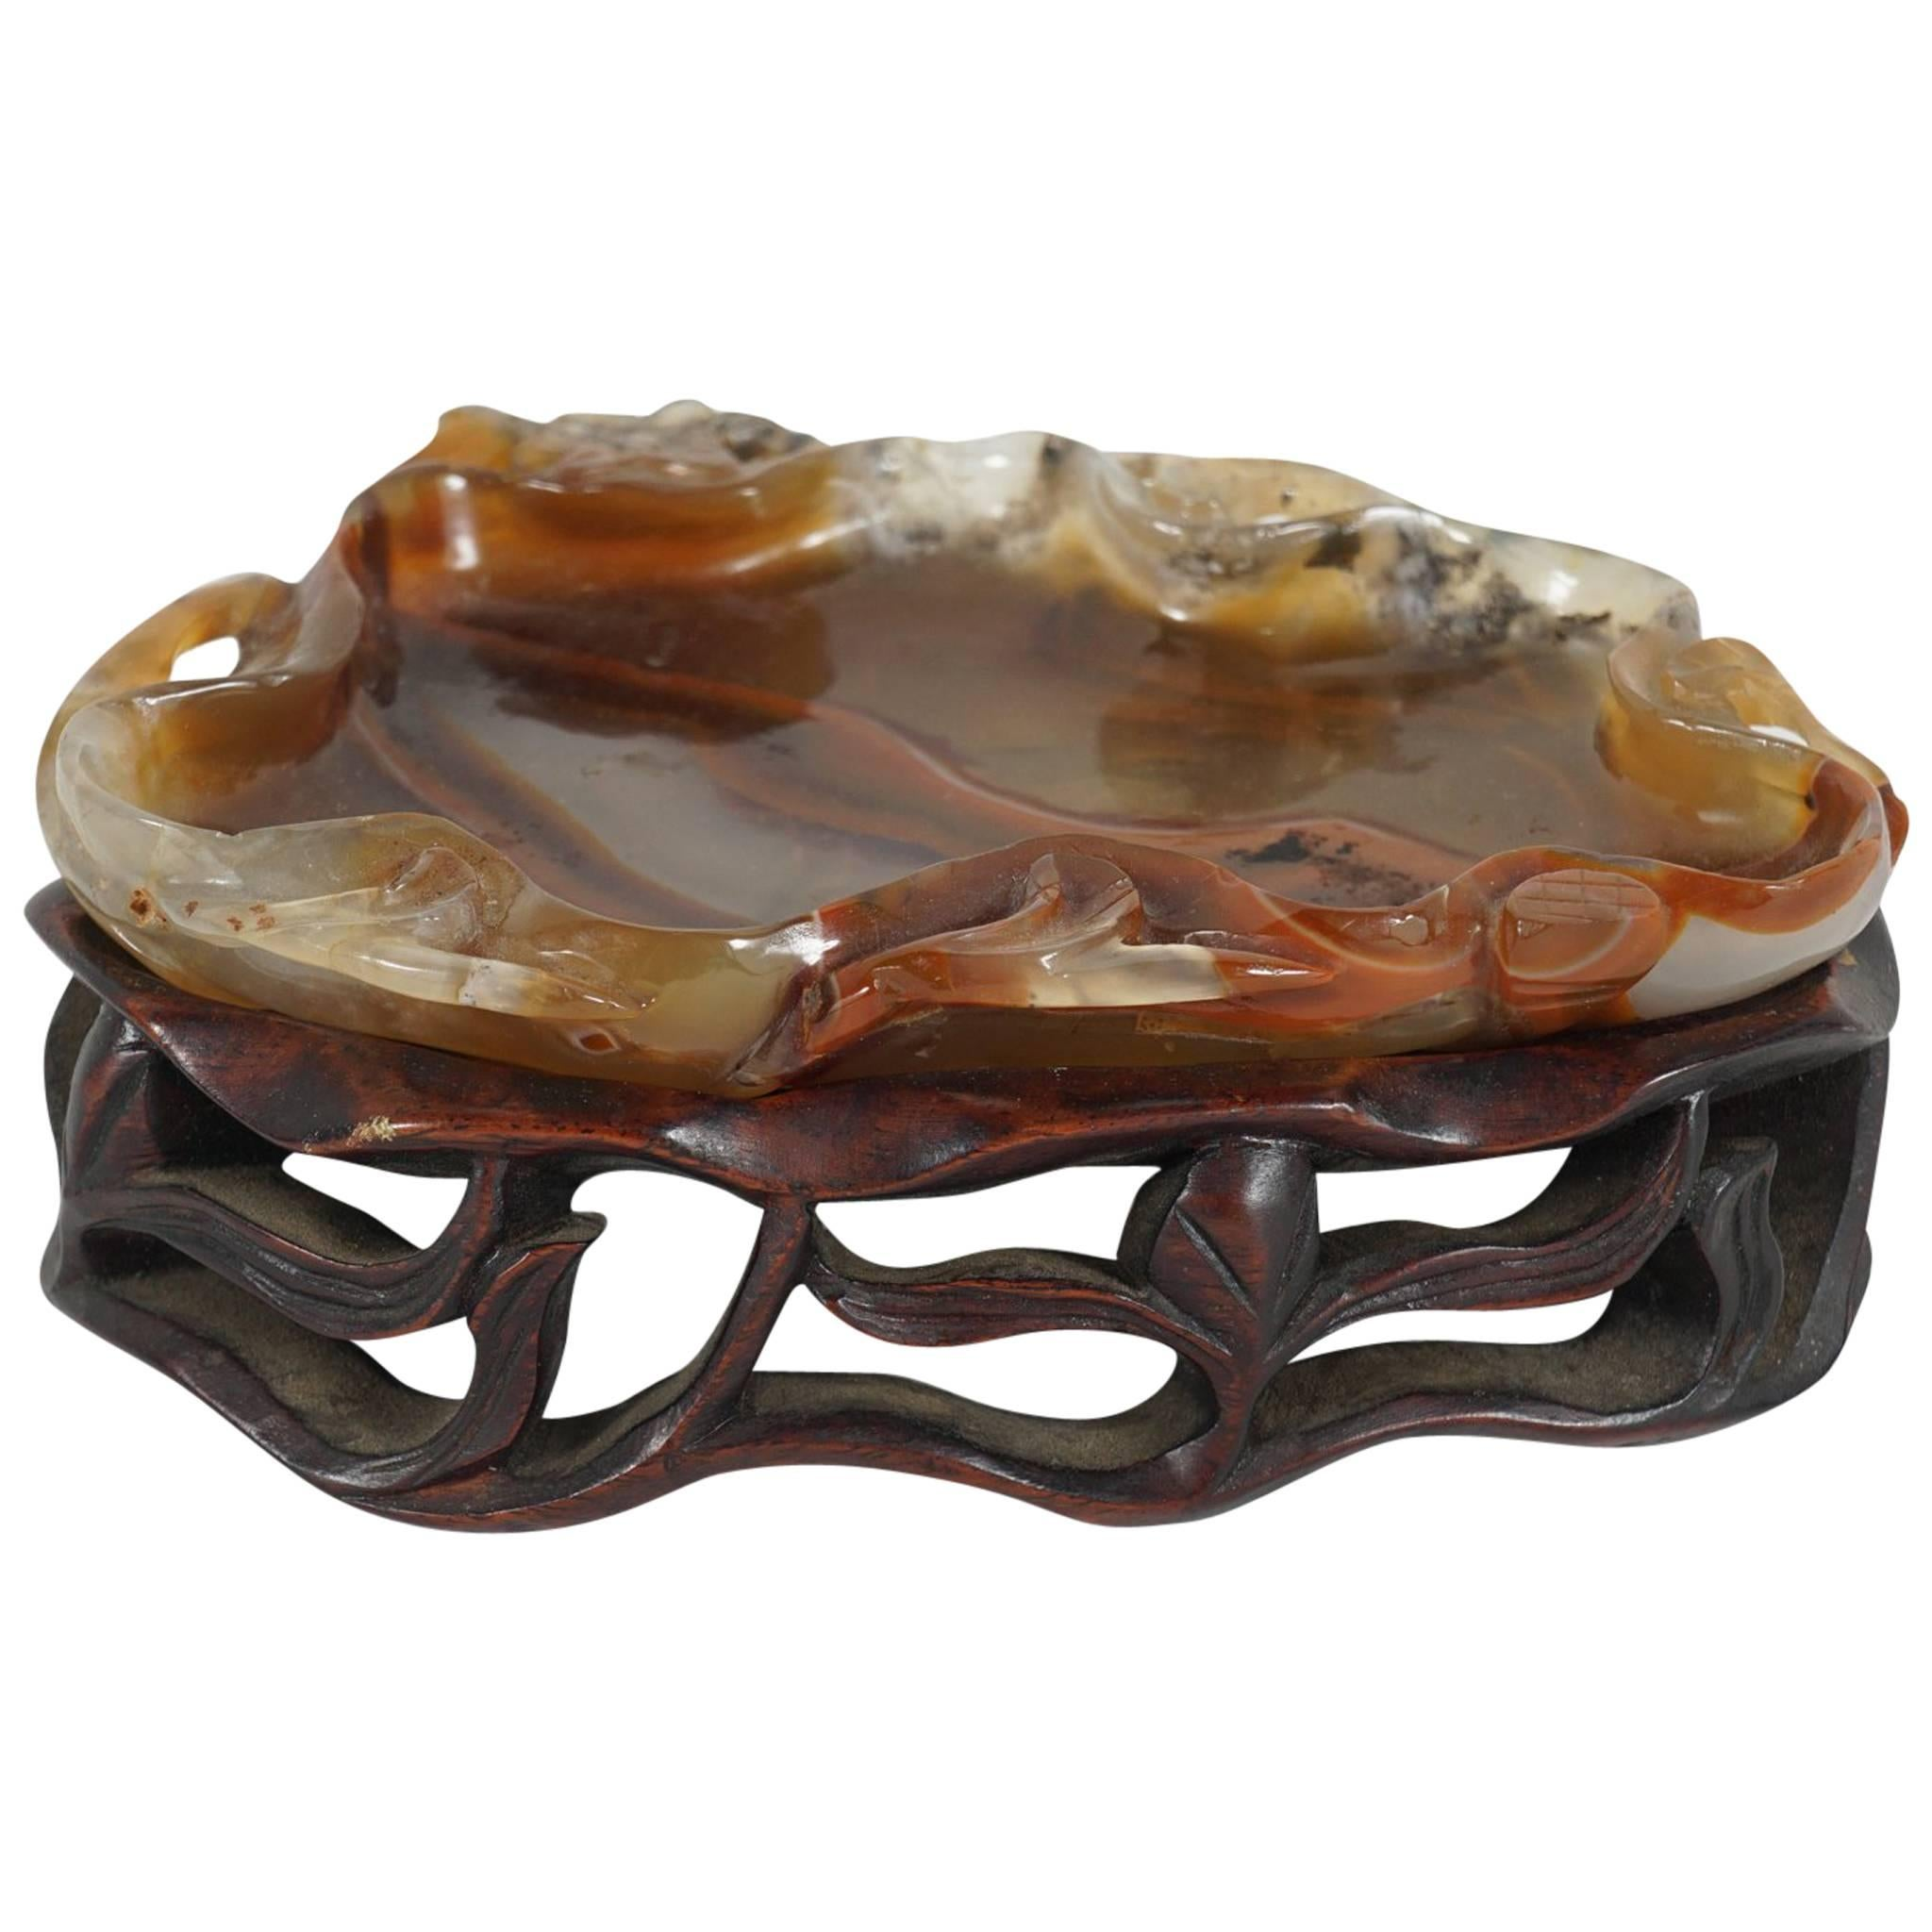 Late 19th-Early 20th Century Carved Chinese Agate Brush Washer on Rosewood Stand